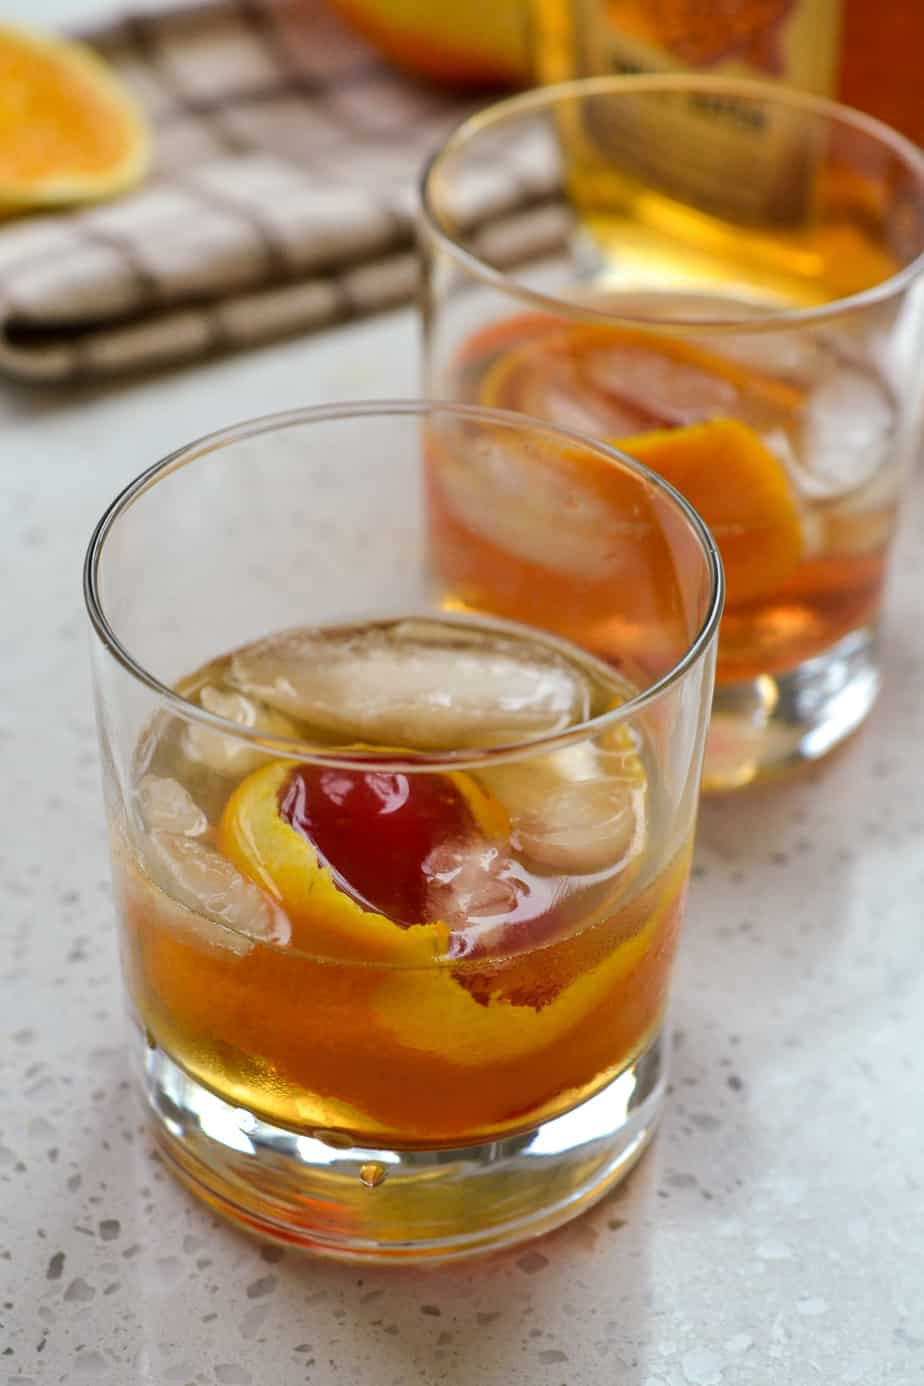 Glass of bourbon whiskey cocktail